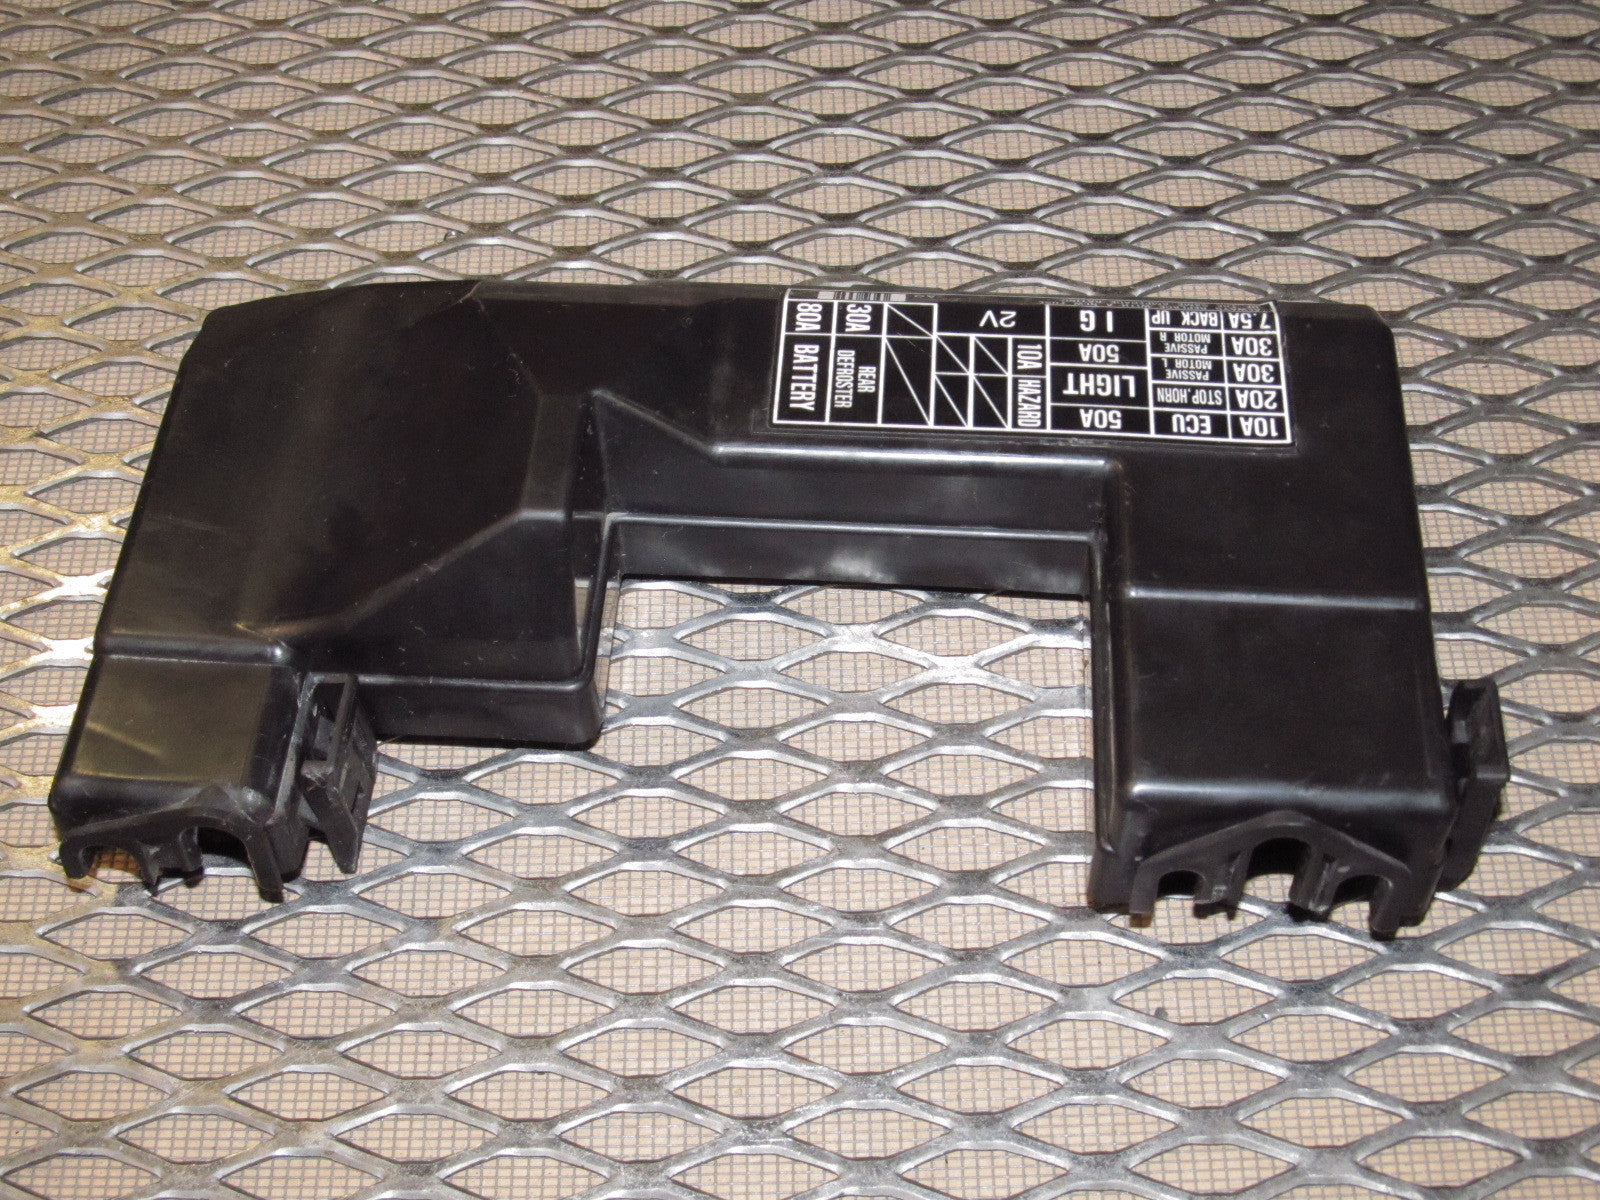 90 91 92 93 Acura Integra OEM Engine Fuse Box Cover – Autopartone.comAutopartone.com